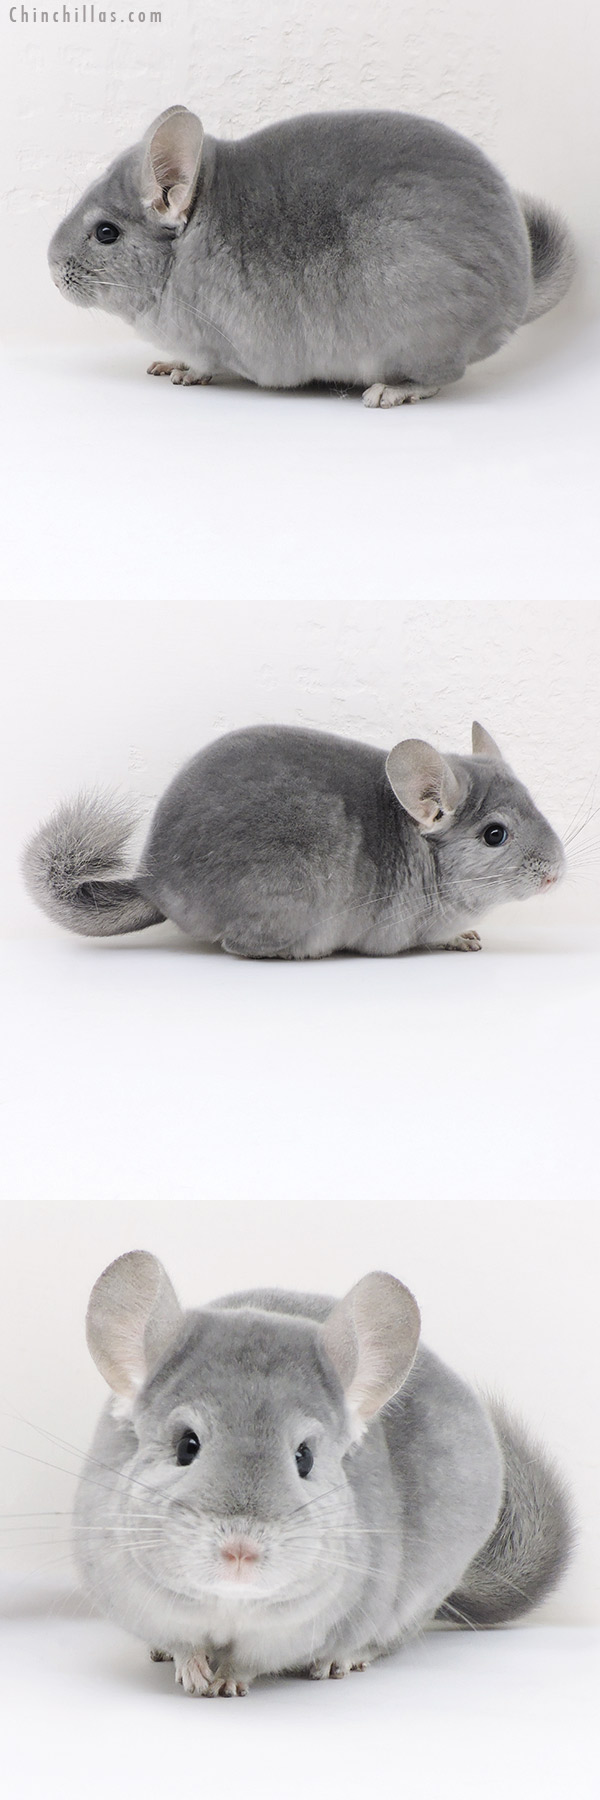 17346 Premium Production Quality Light Wrap Around Blue Diamond Female Chinchilla